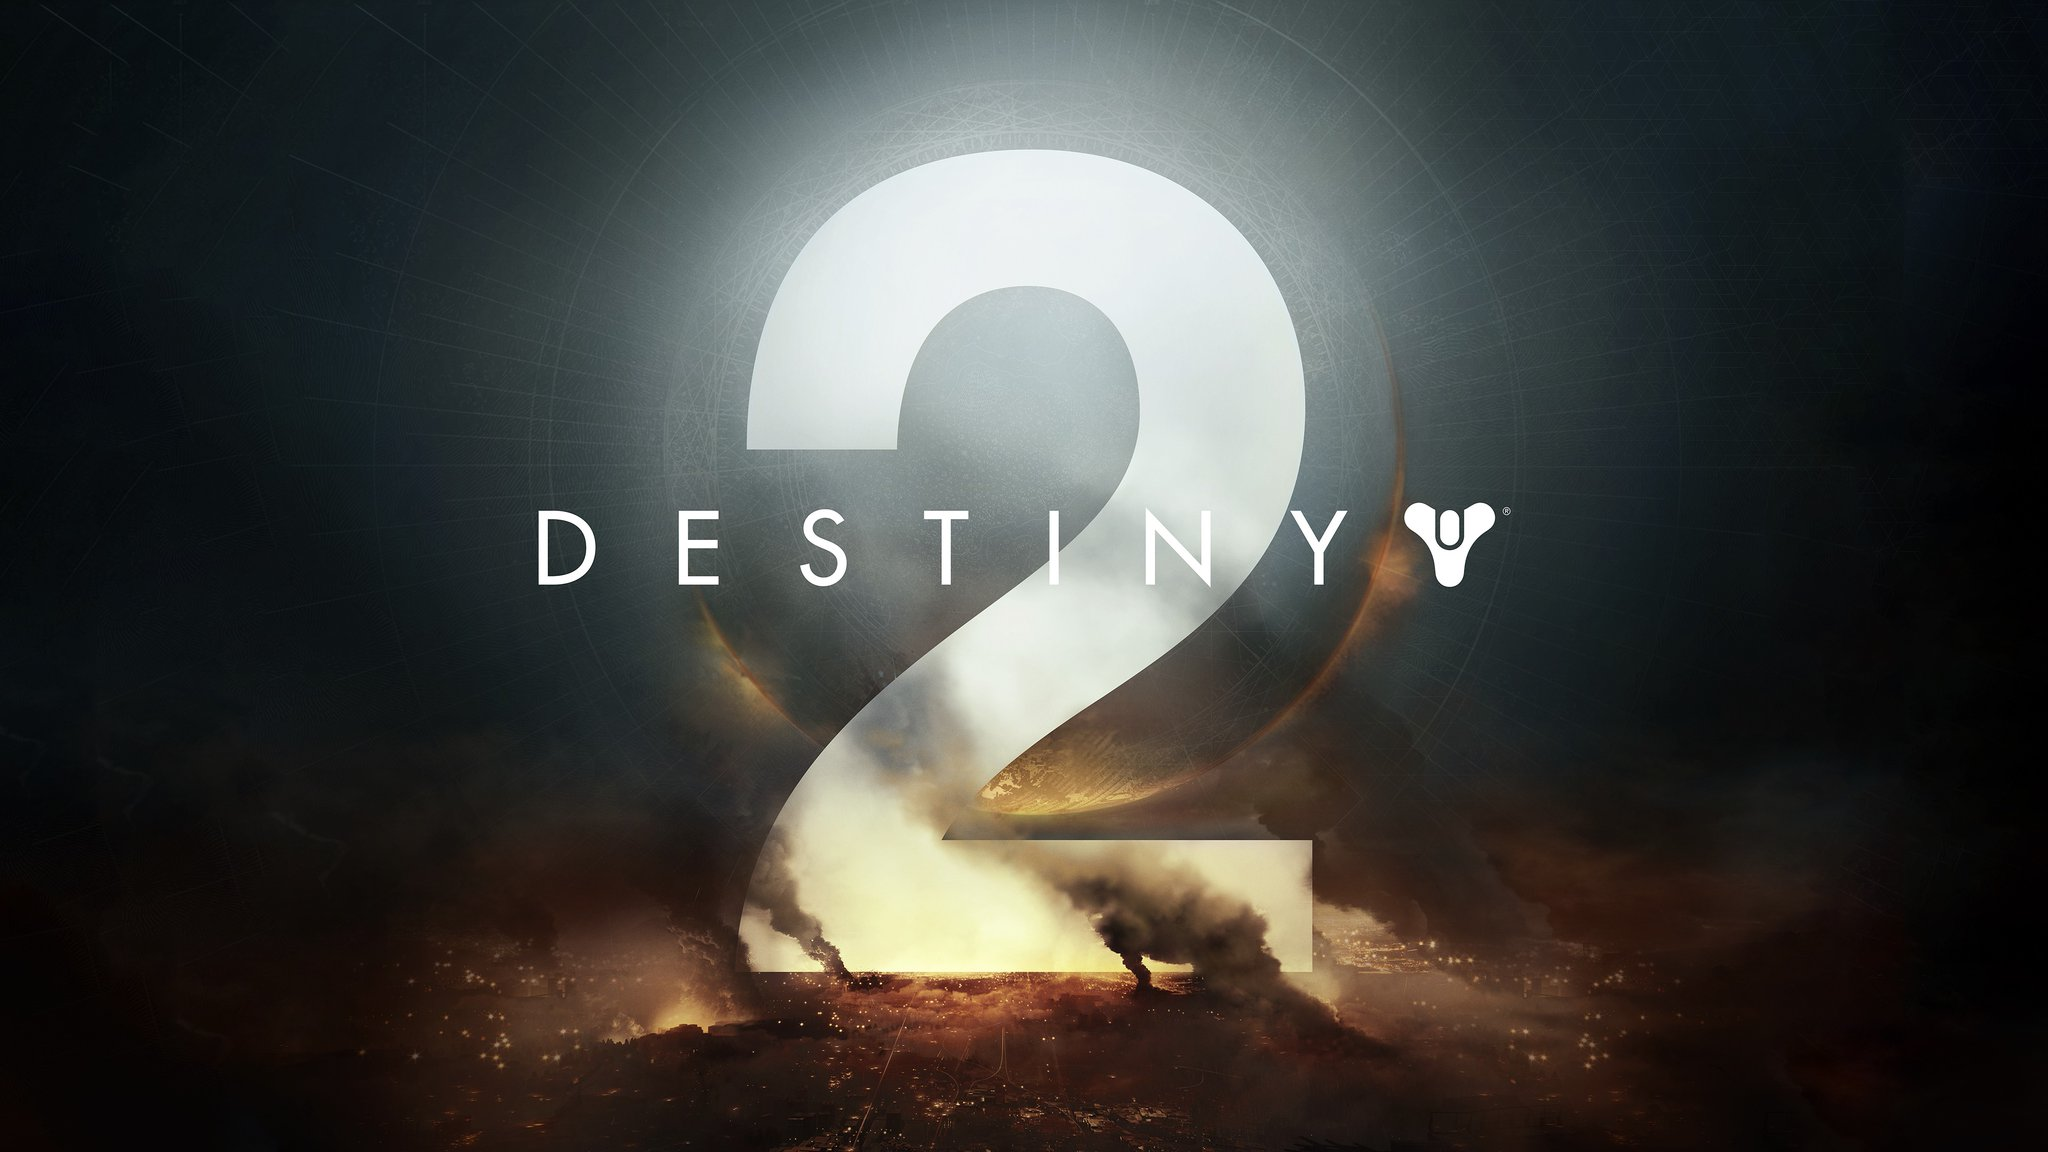 Destiny 2 Made Official On Twitter